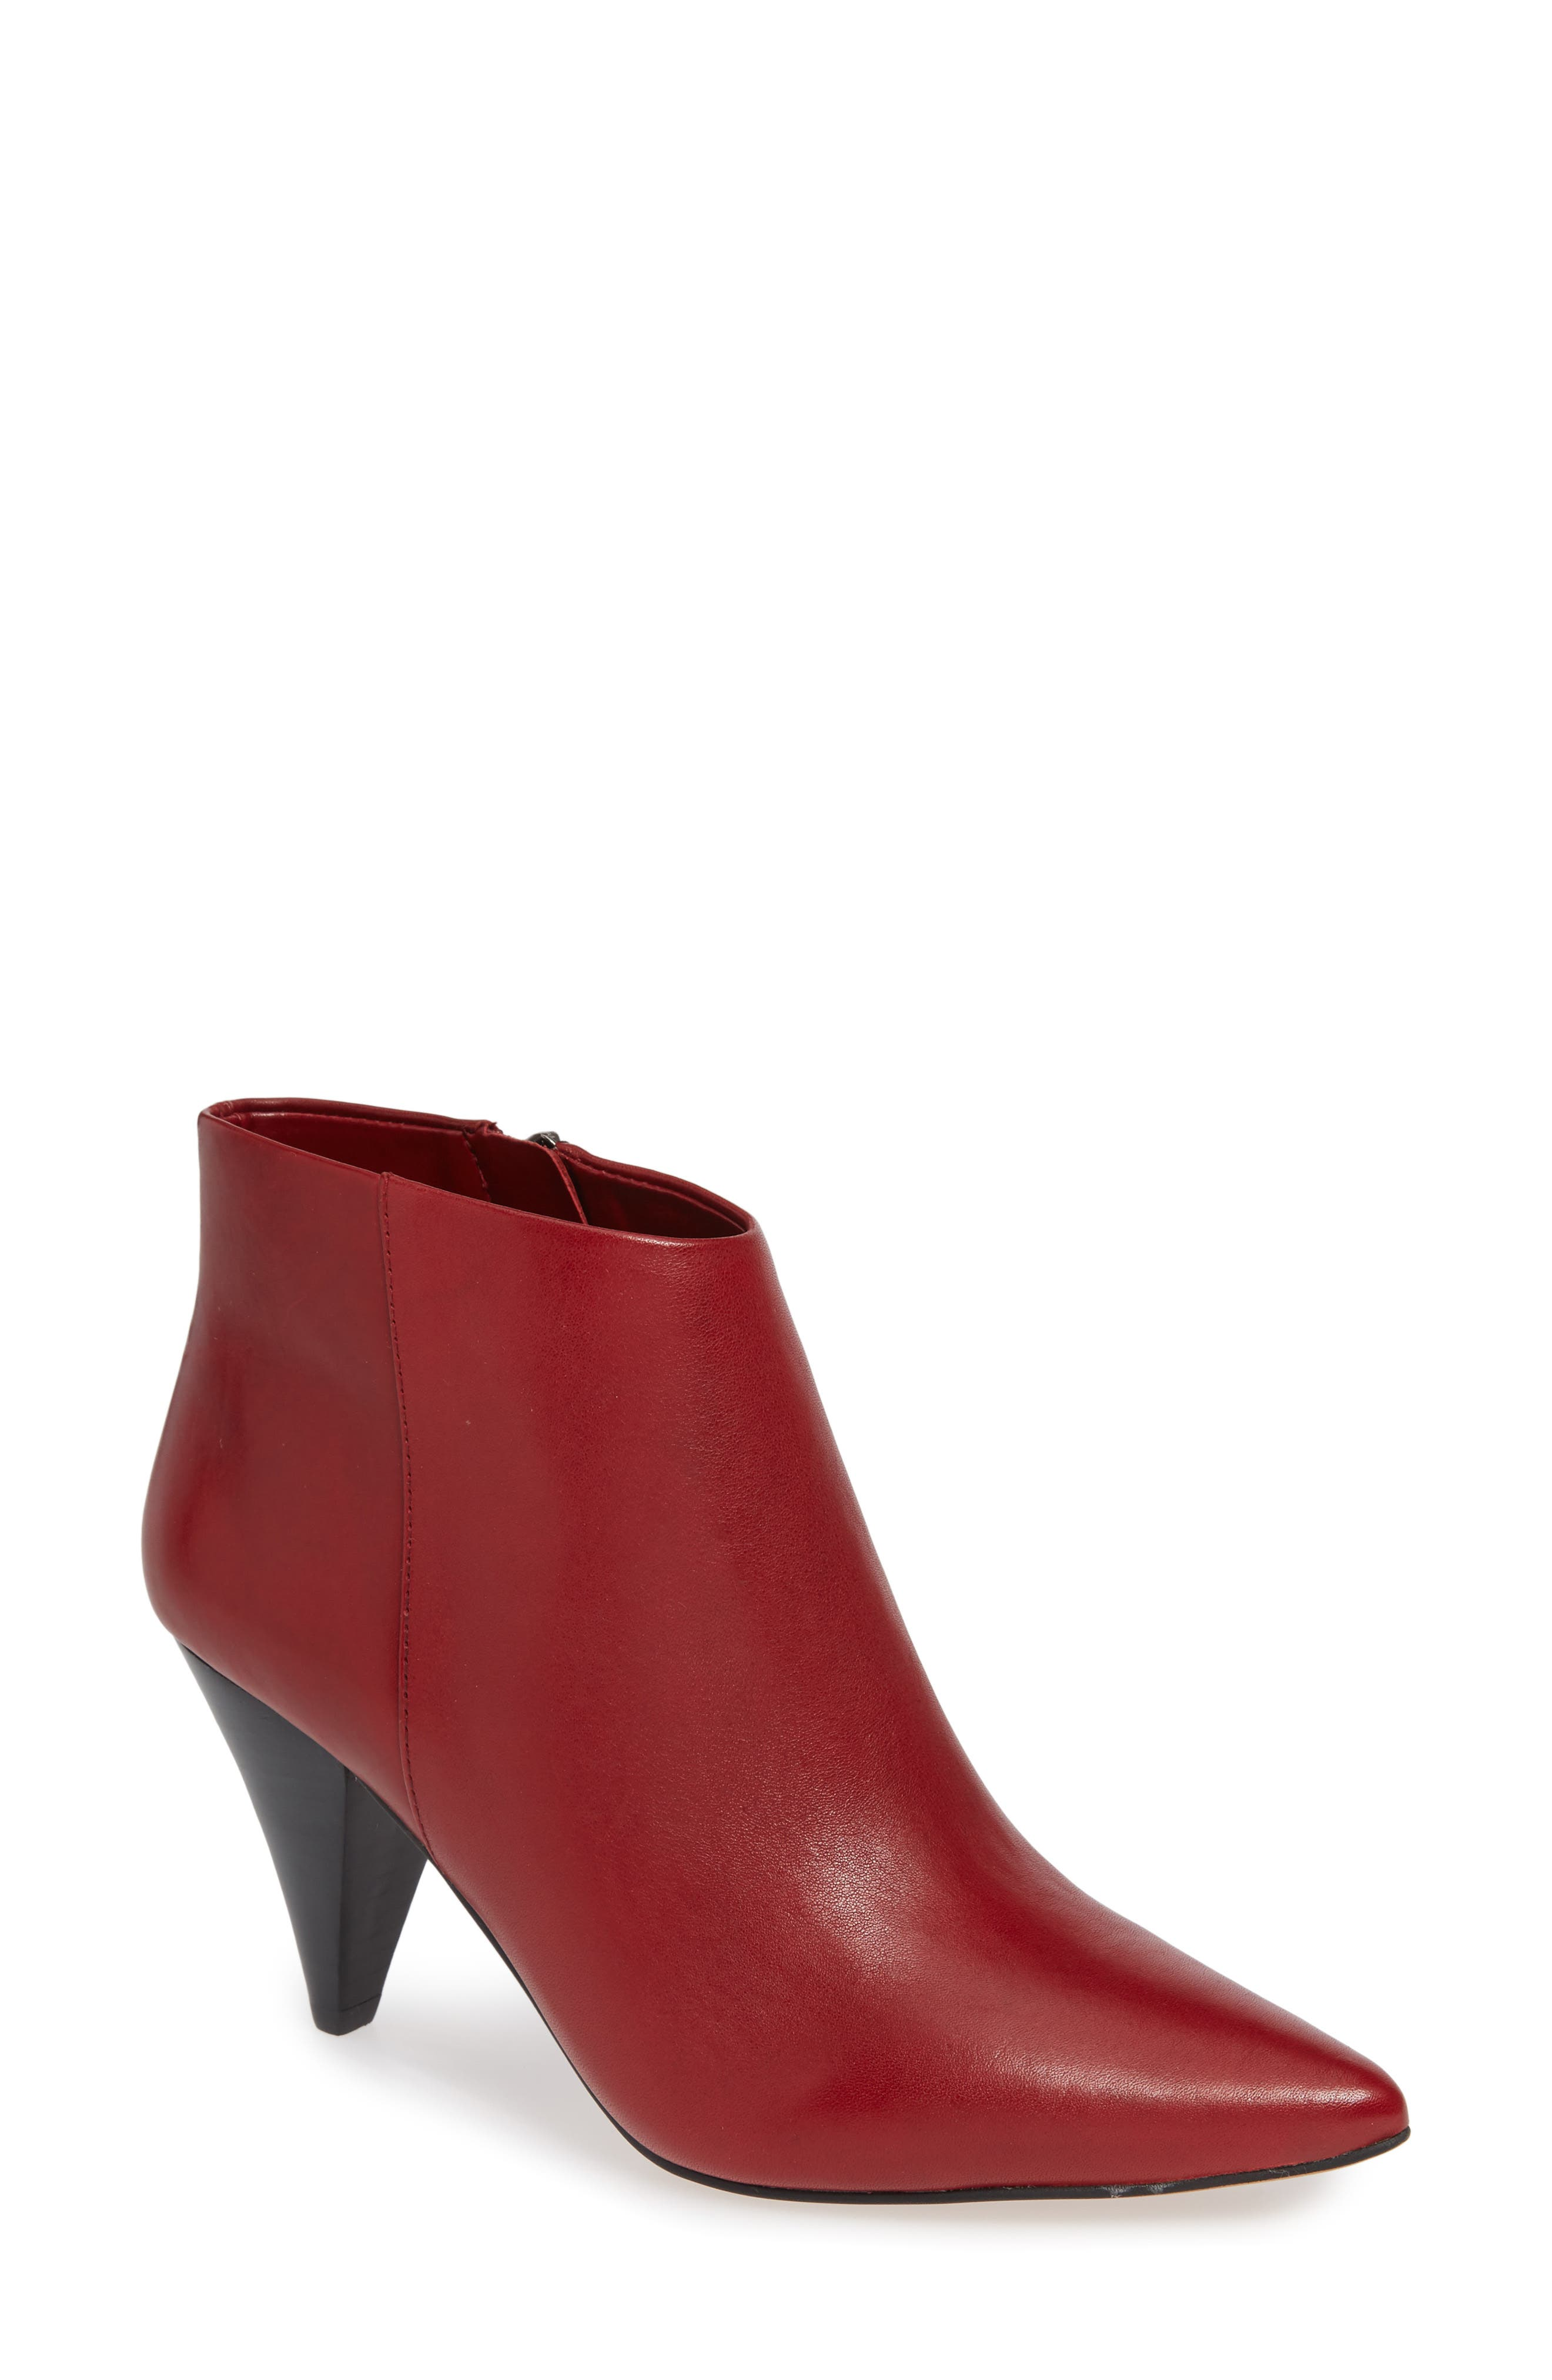 Vince Camuto Adriela Bootie, Red